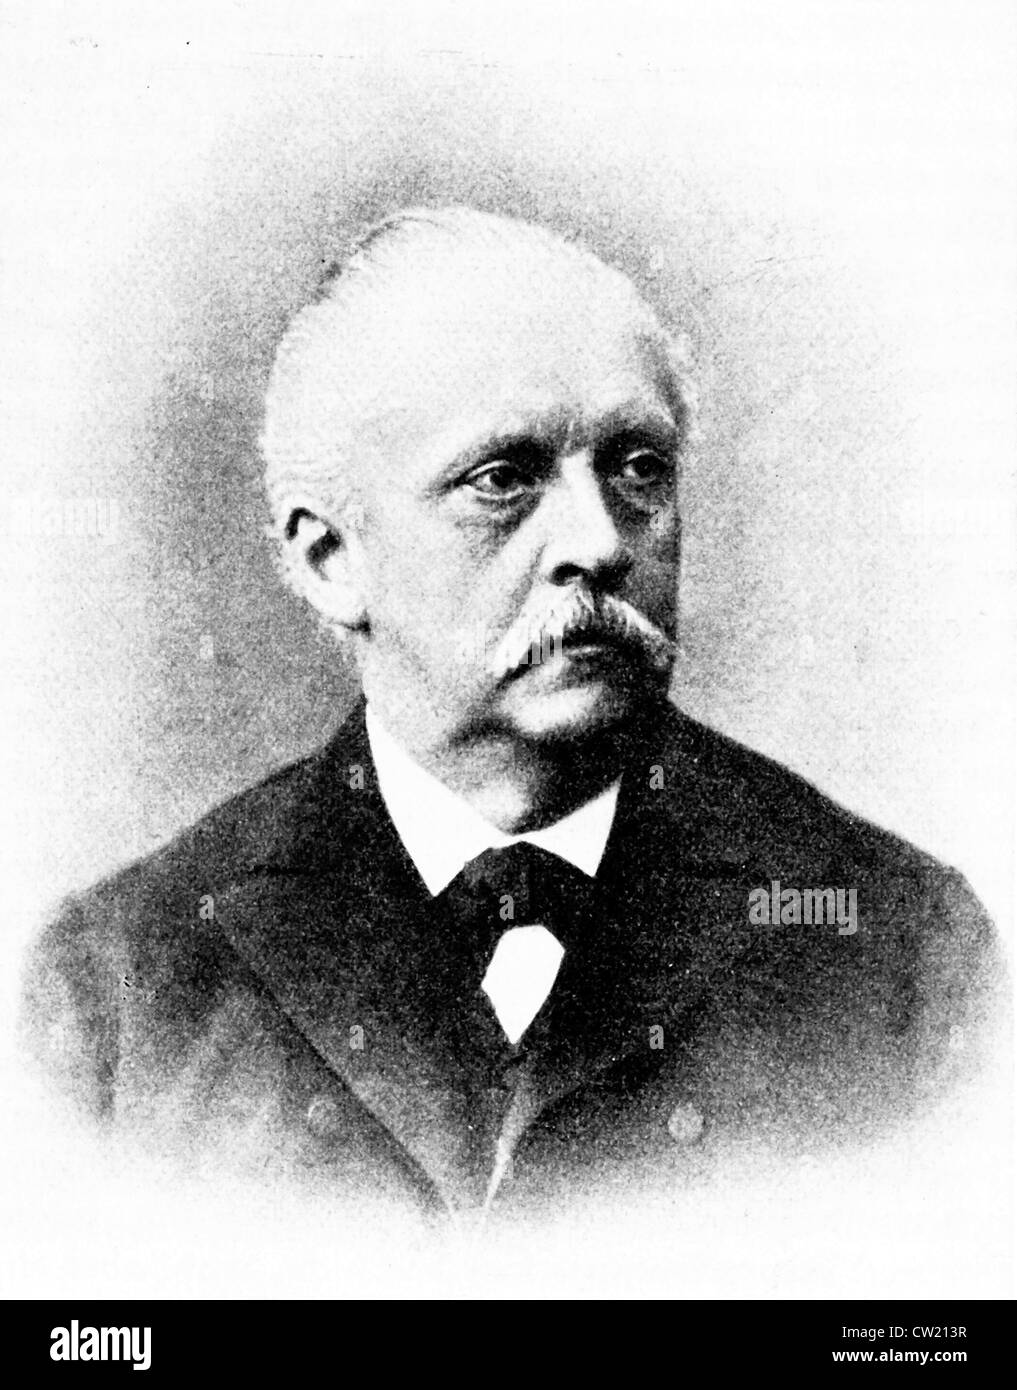 biography of hermann ludwig ferdinand helmholtz Hermann ludwig ferdinand von helmholtz (august 31, 1821 - september 8, 1894) was a german physician and physicist who made significant contributions in several scientific fields the largest german association of research institutions, the helmholtz association, is named after him[5.